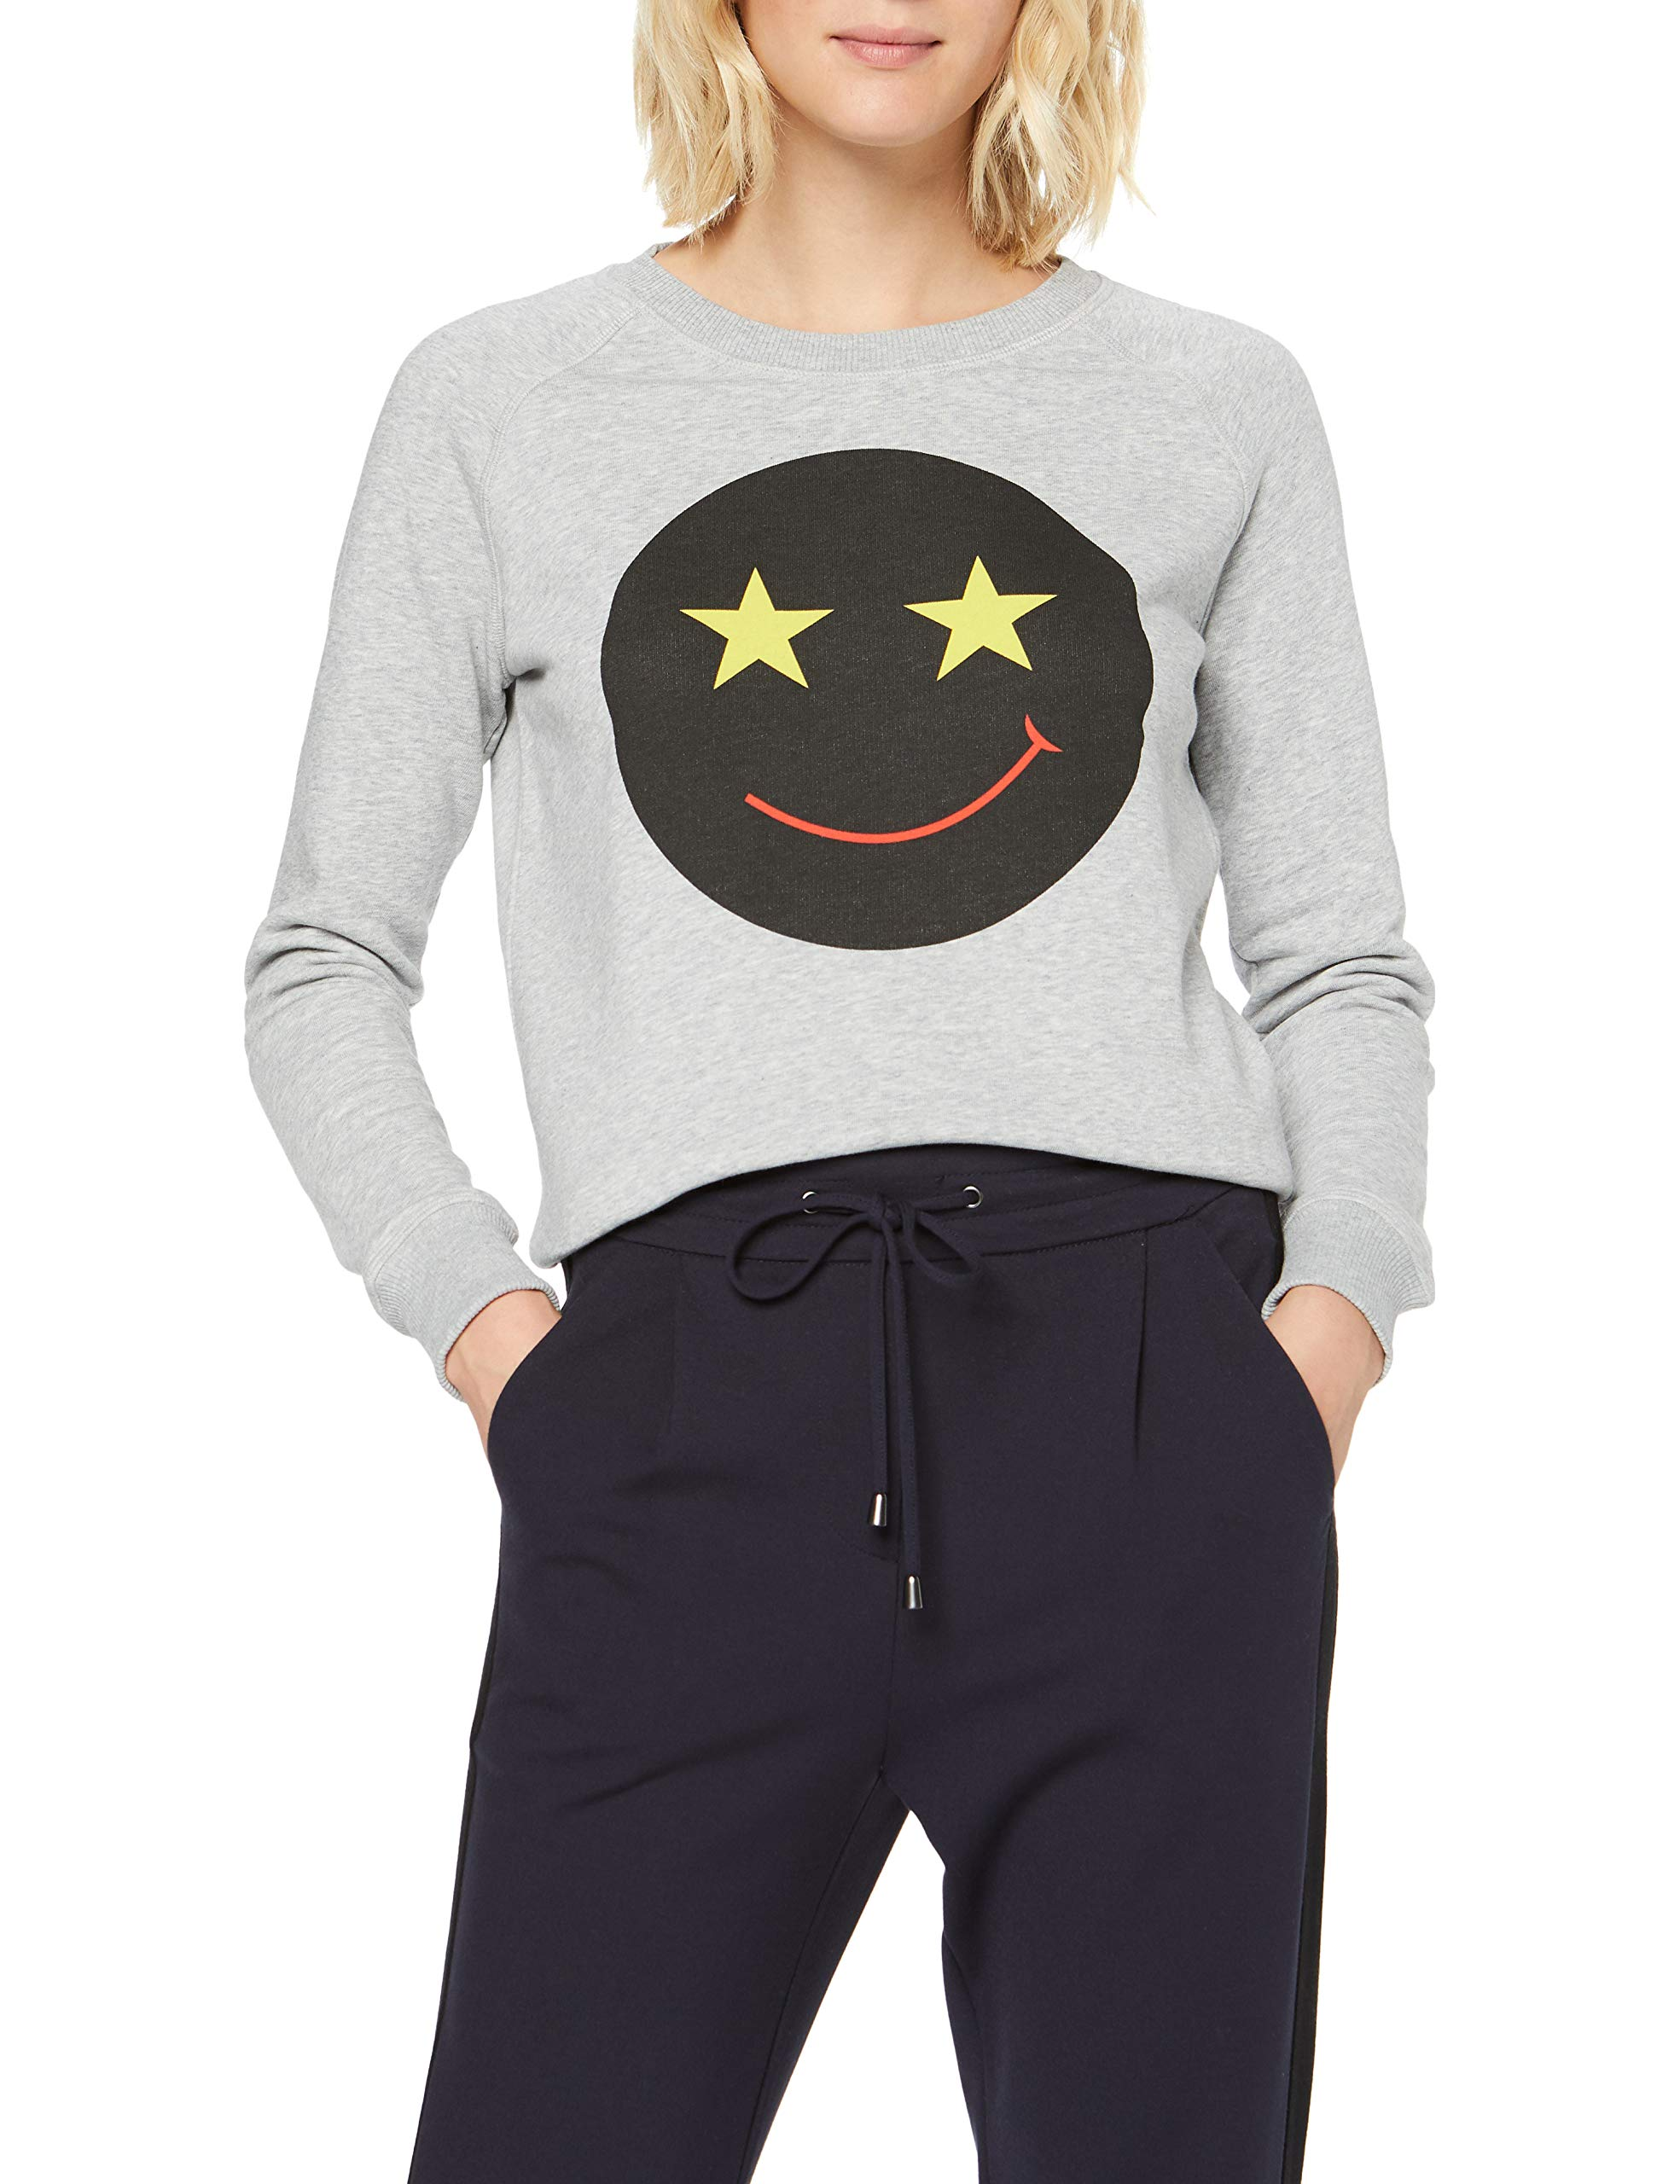 Fabricant smallFemme Mélange36taille Angie Whyred Sweat Smile shirtGrisgrey 5jqcLS3RA4